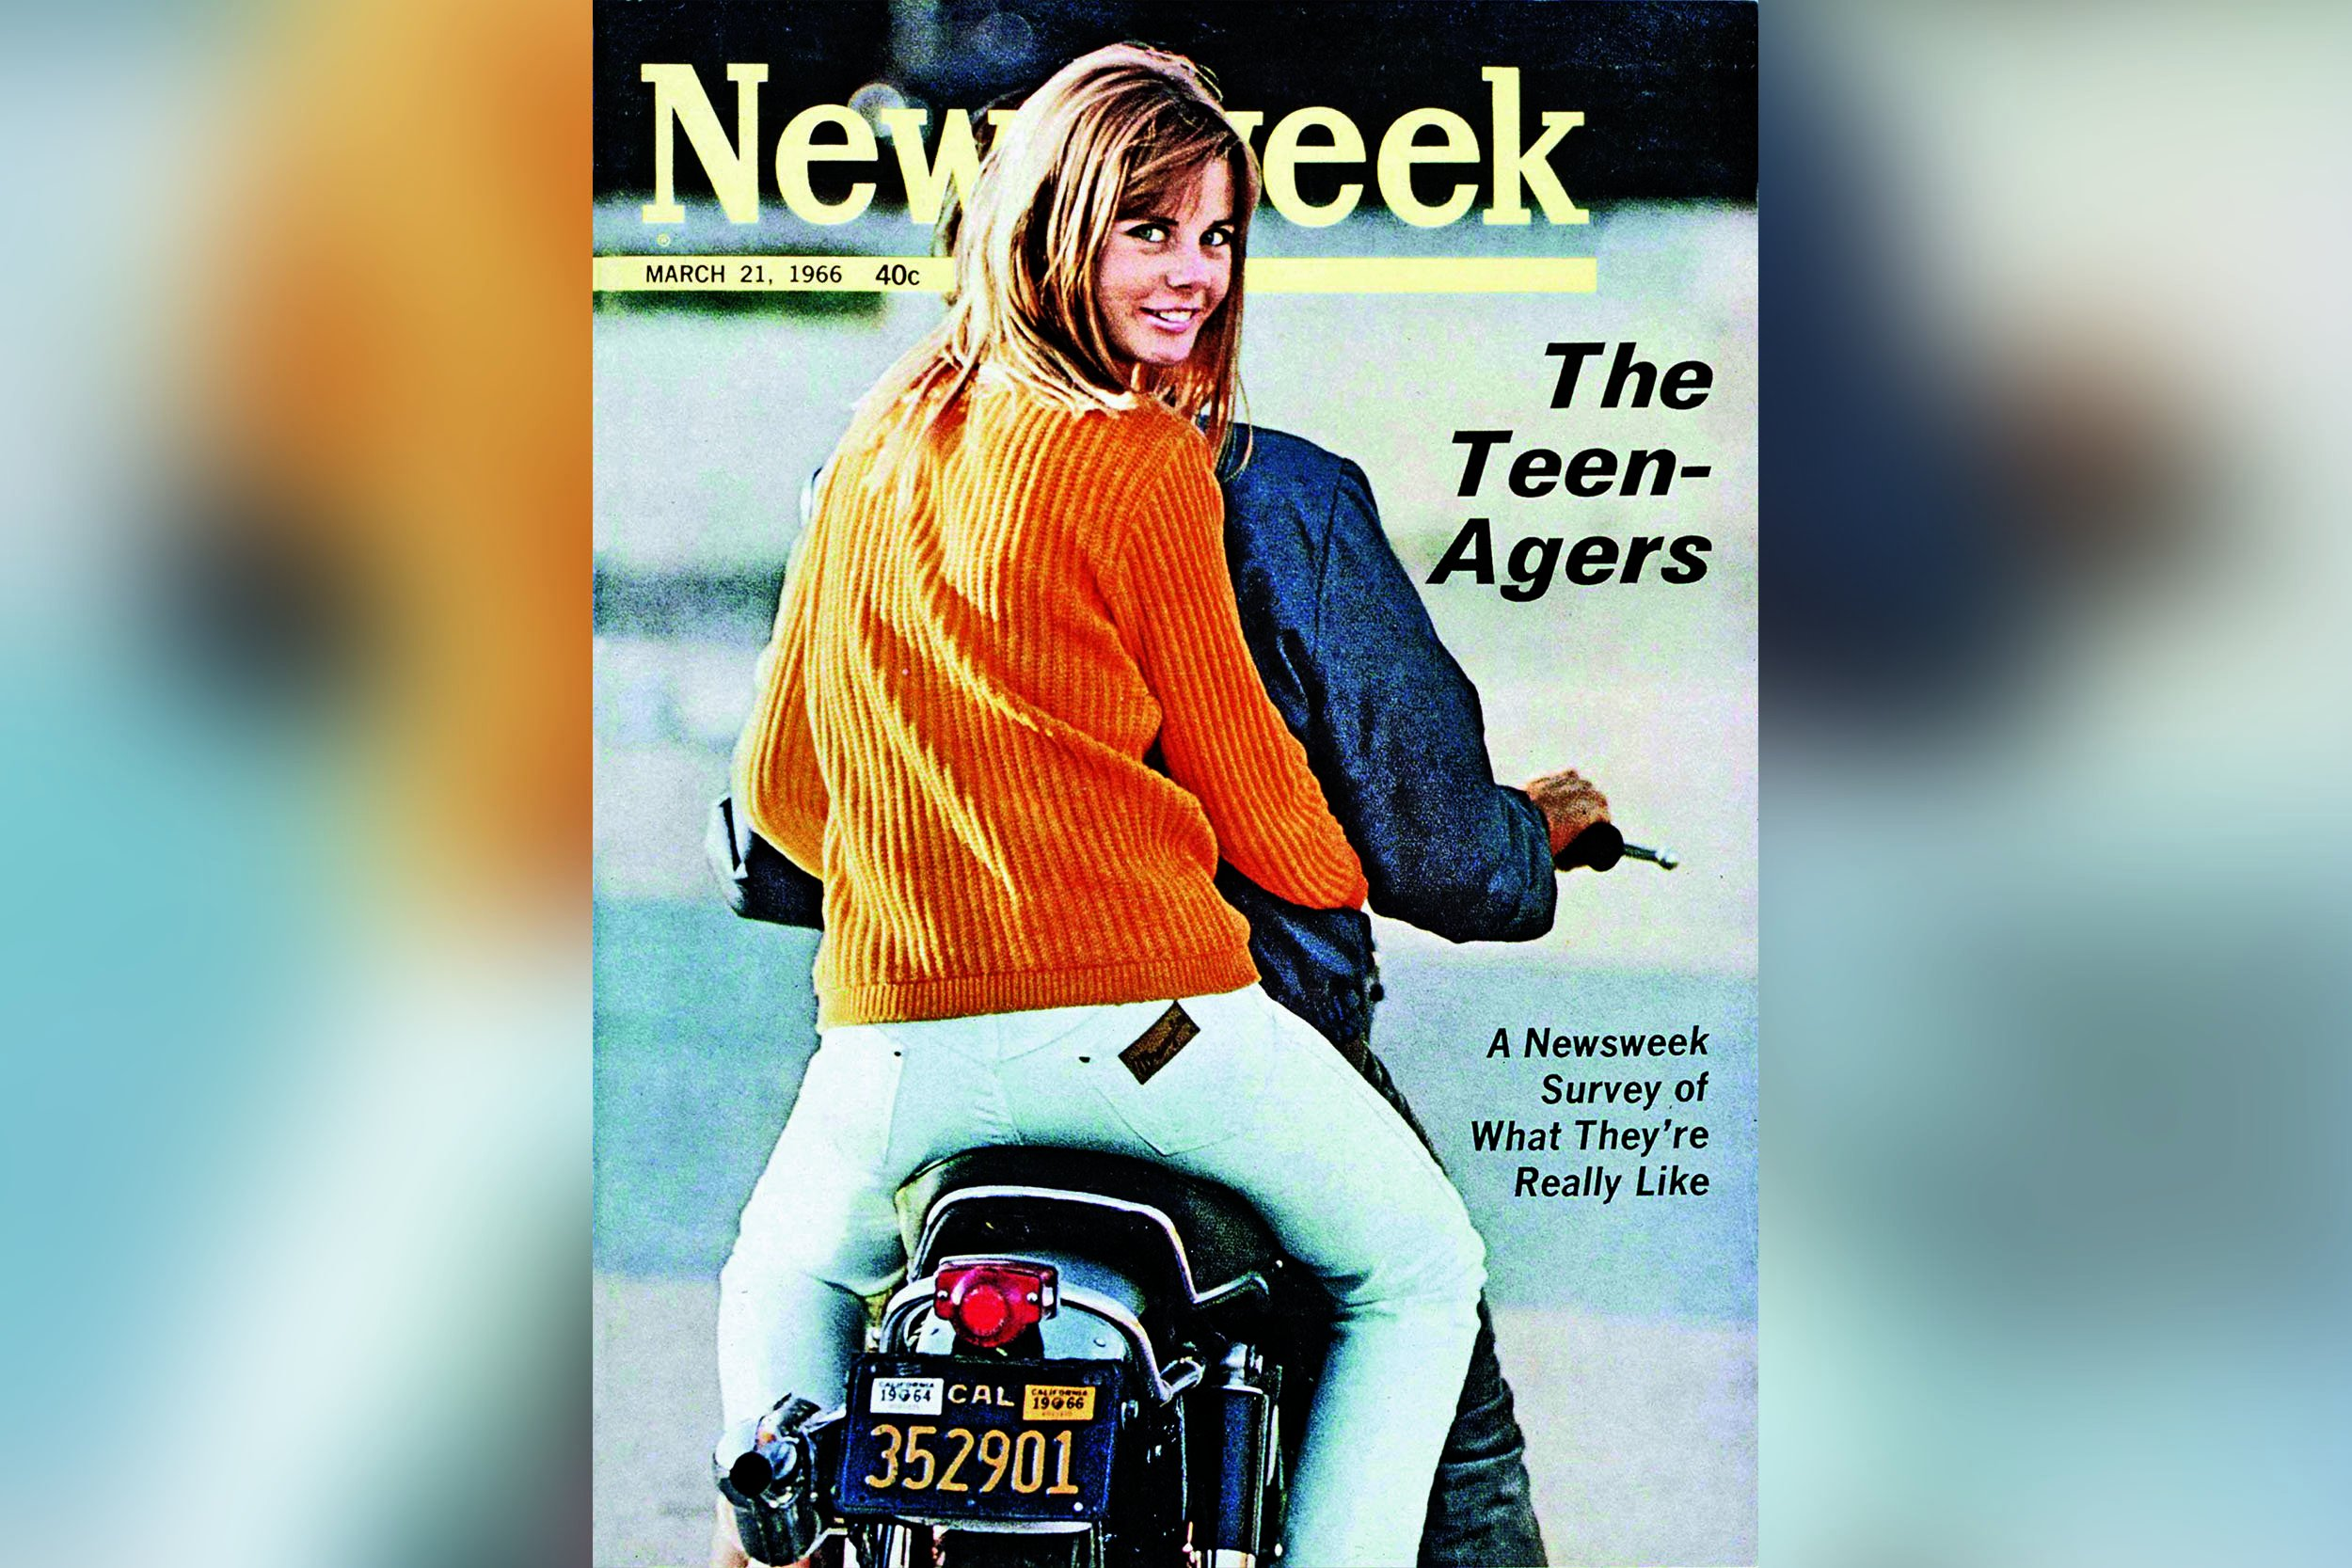 Jan Smithers Nude newsweek staffers remember the 1966 cover story on teens